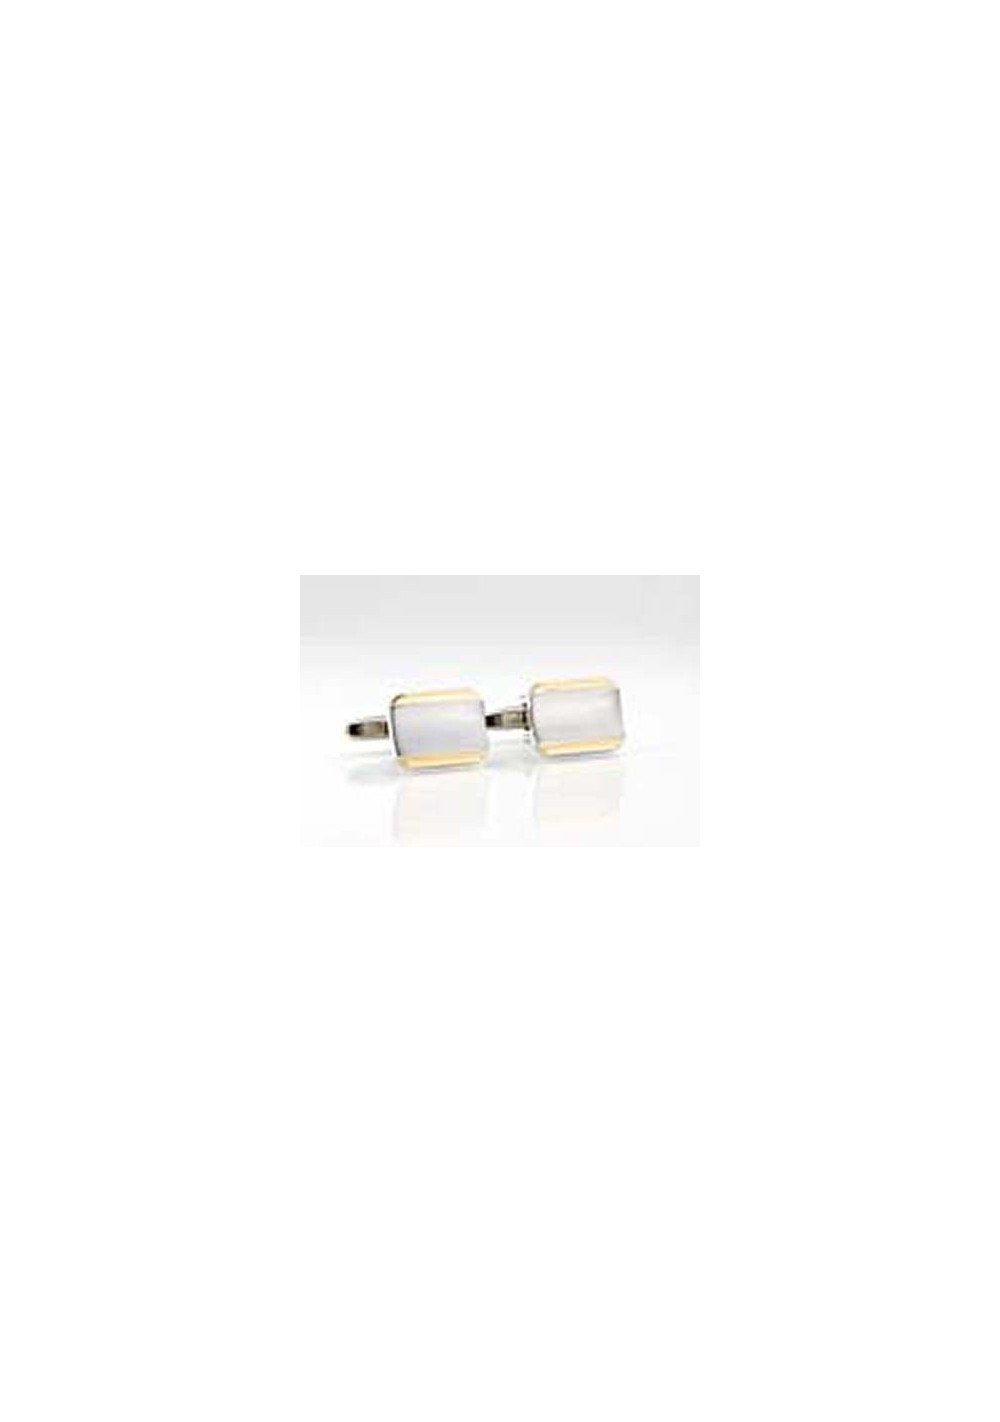 Classic Silver and Gold Cufflinks